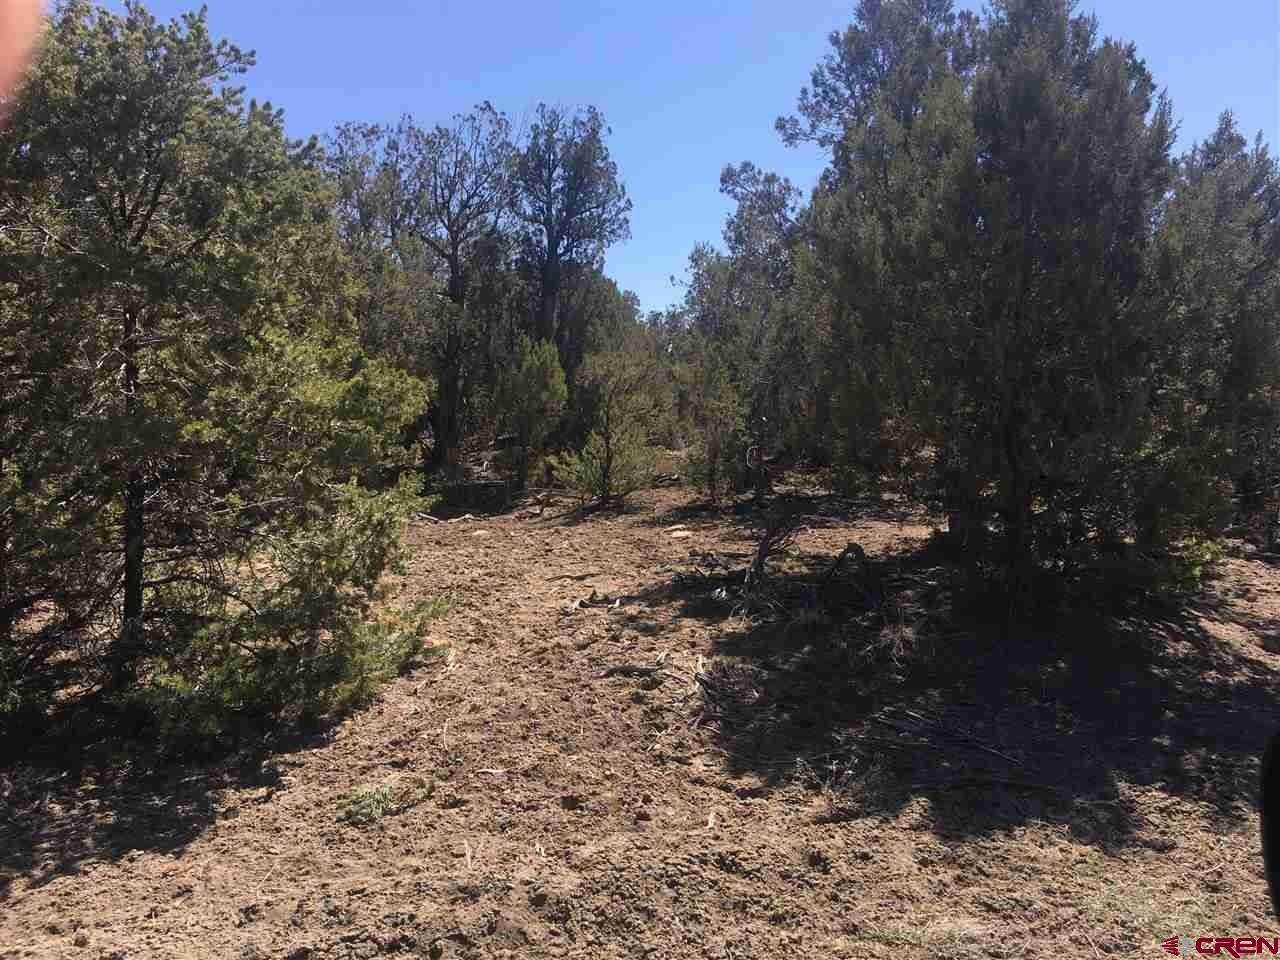 Agricultural Land for Sale at X County Rd 973 Arboles, Colorado 81121 United States